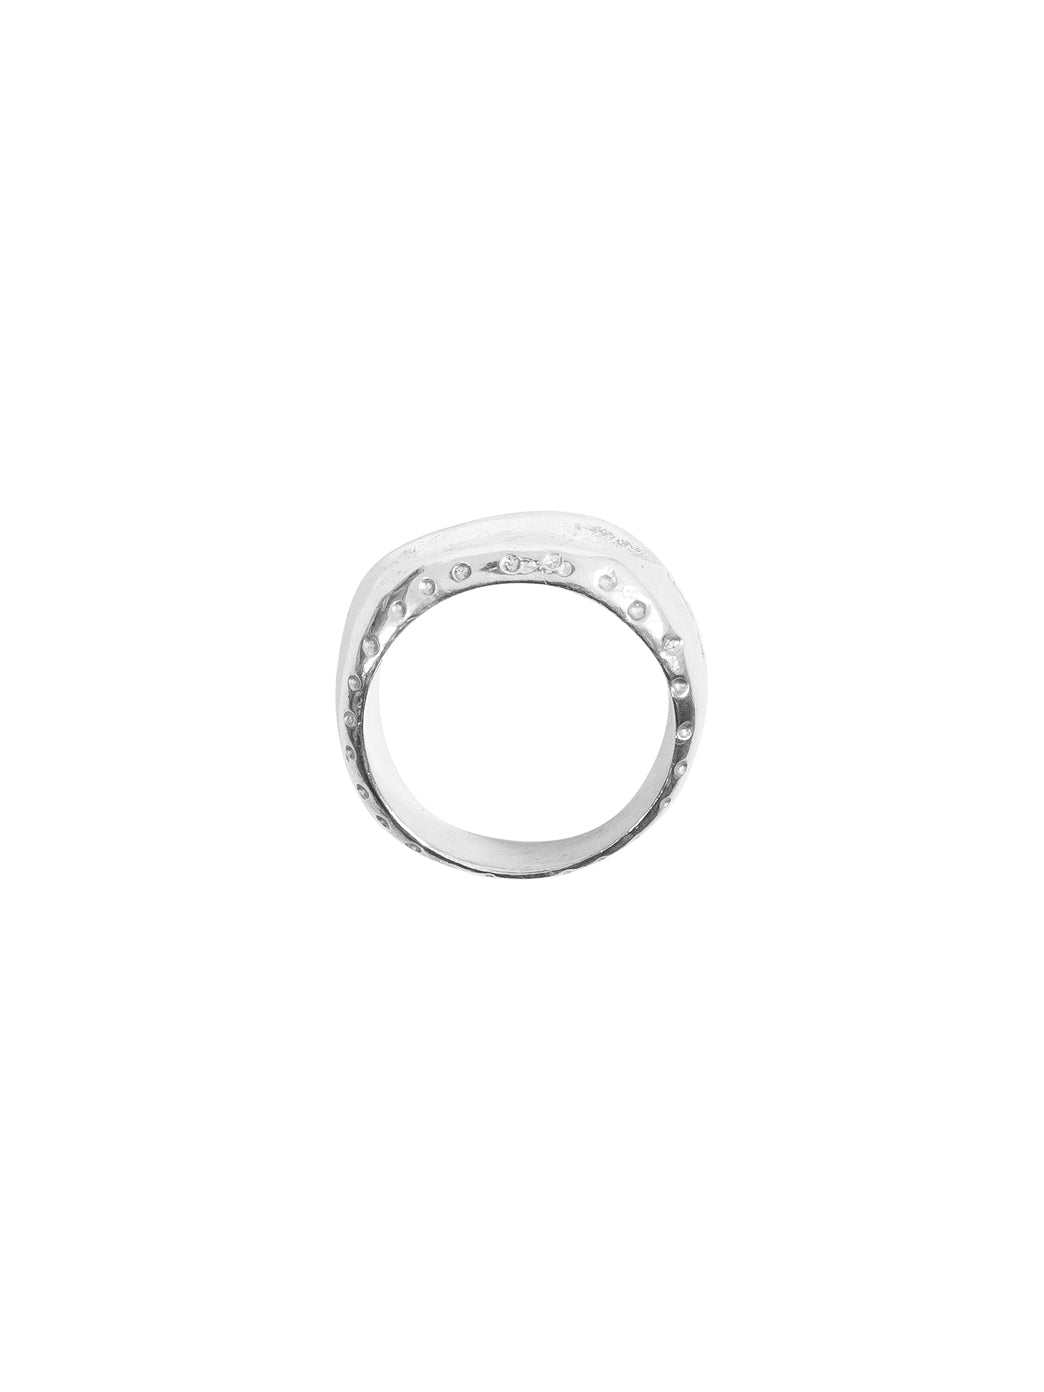 Fiorina Jewellery Men's Roman Numeral Ring Side View